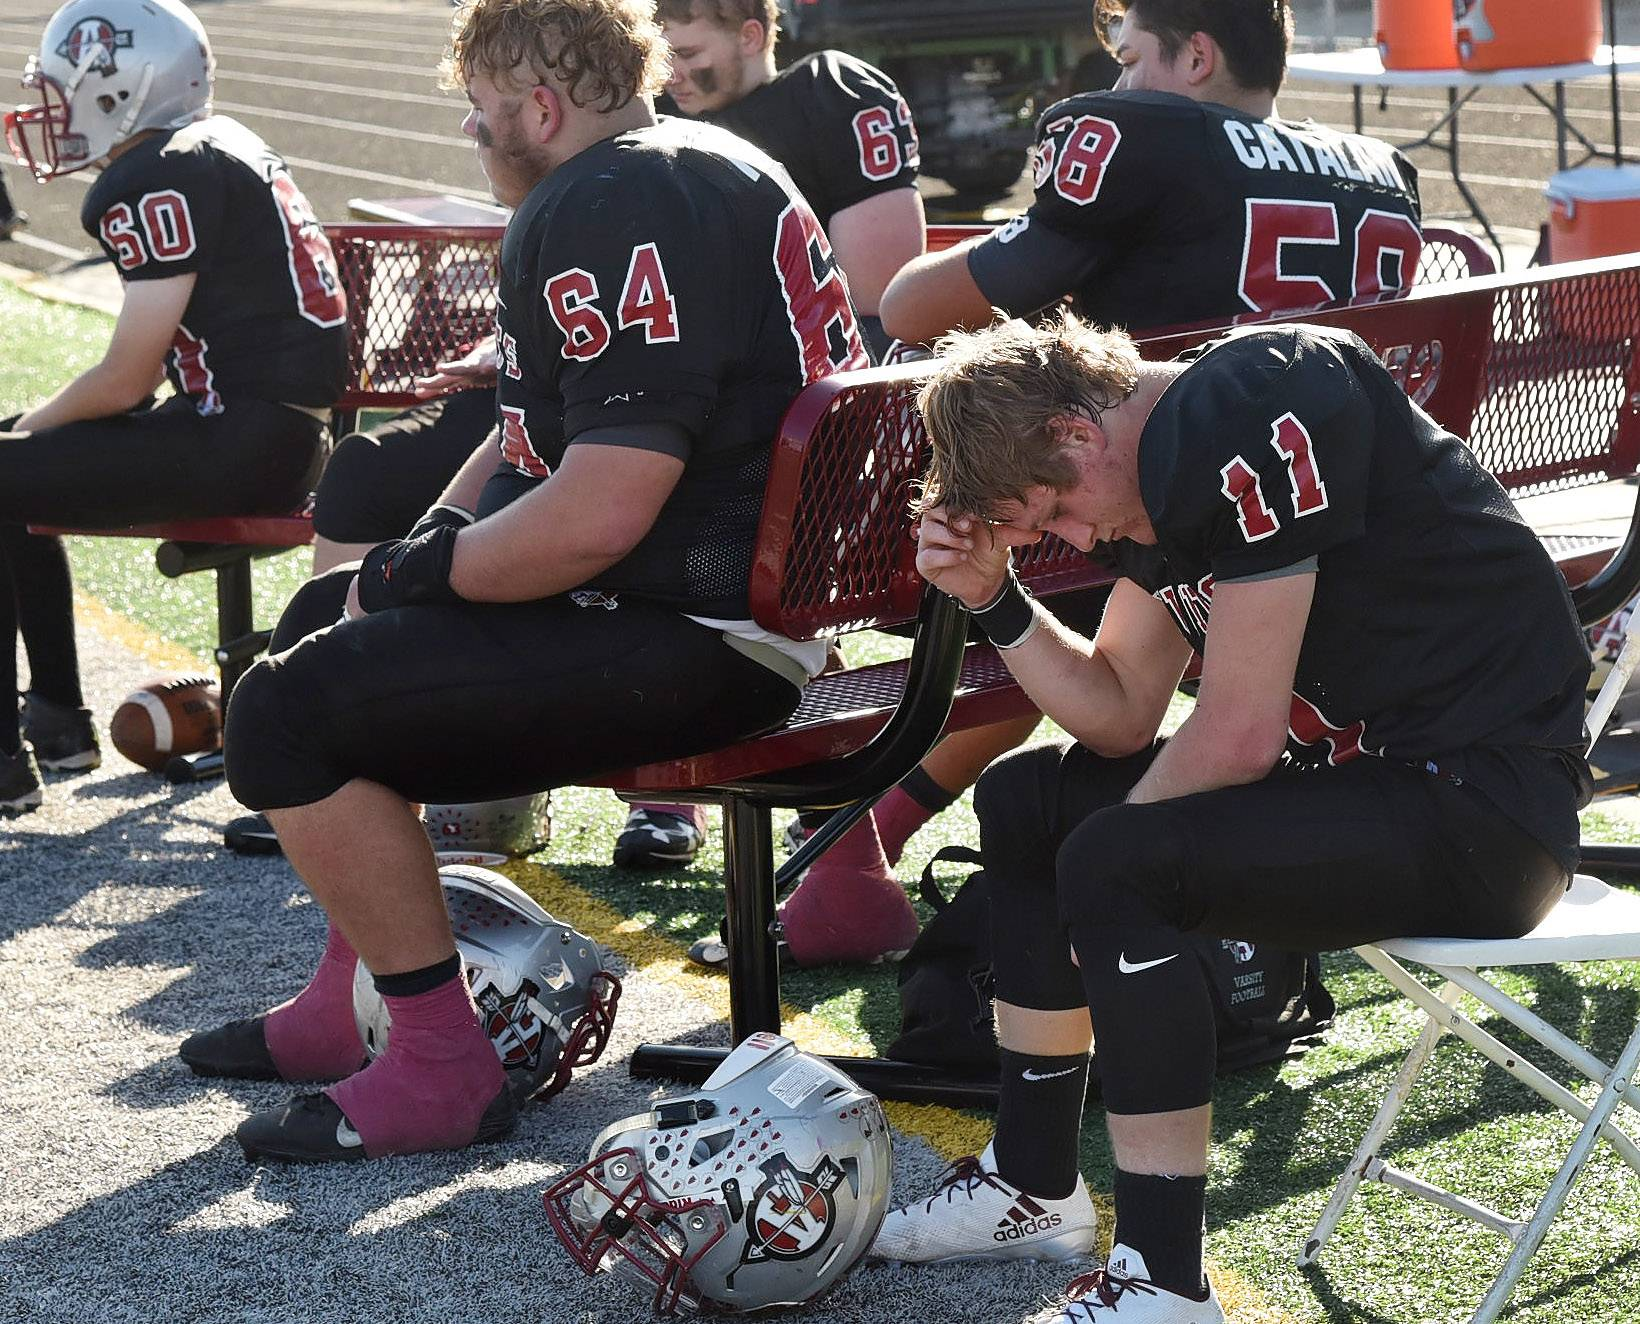 Antioch running back Hunter Price sits dejectedly on the bench after three quarters of play during the Class 6A second-round playoff game between the Sequoits and DeKalb.